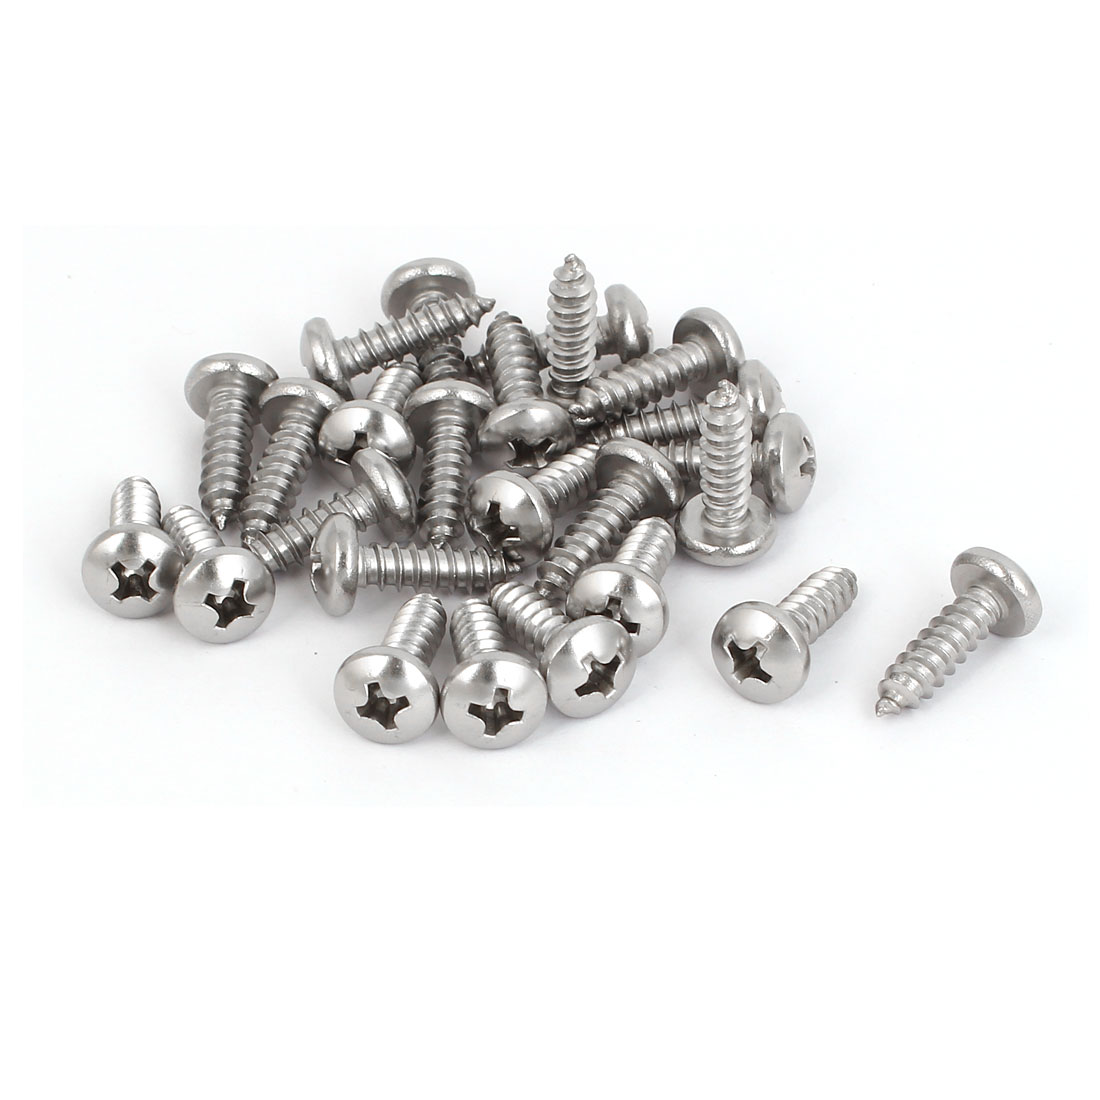 M4.8x16mm 316 Stainless Steel Phillips Pan Head Self Tapping Screws Bolts 25pcs